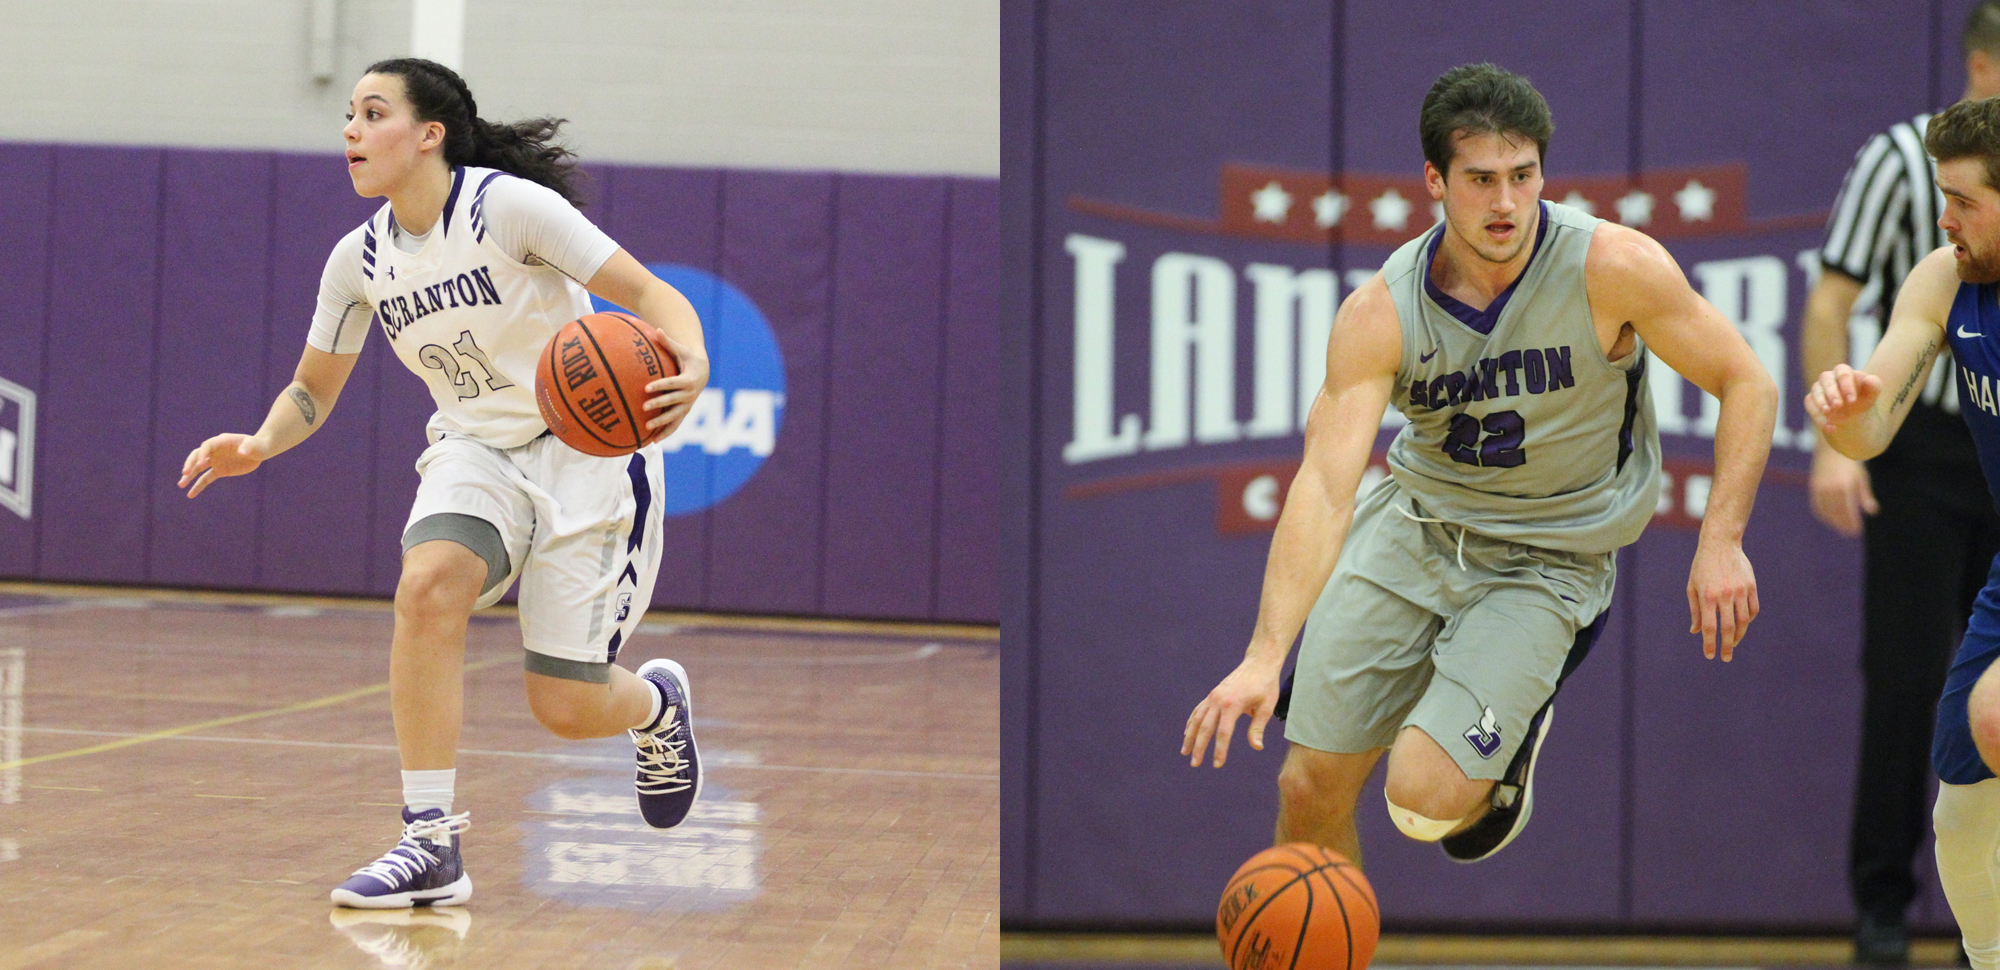 The University of Scranton basketball teams will now open the Landmark Conference playoffs on Thursday night.